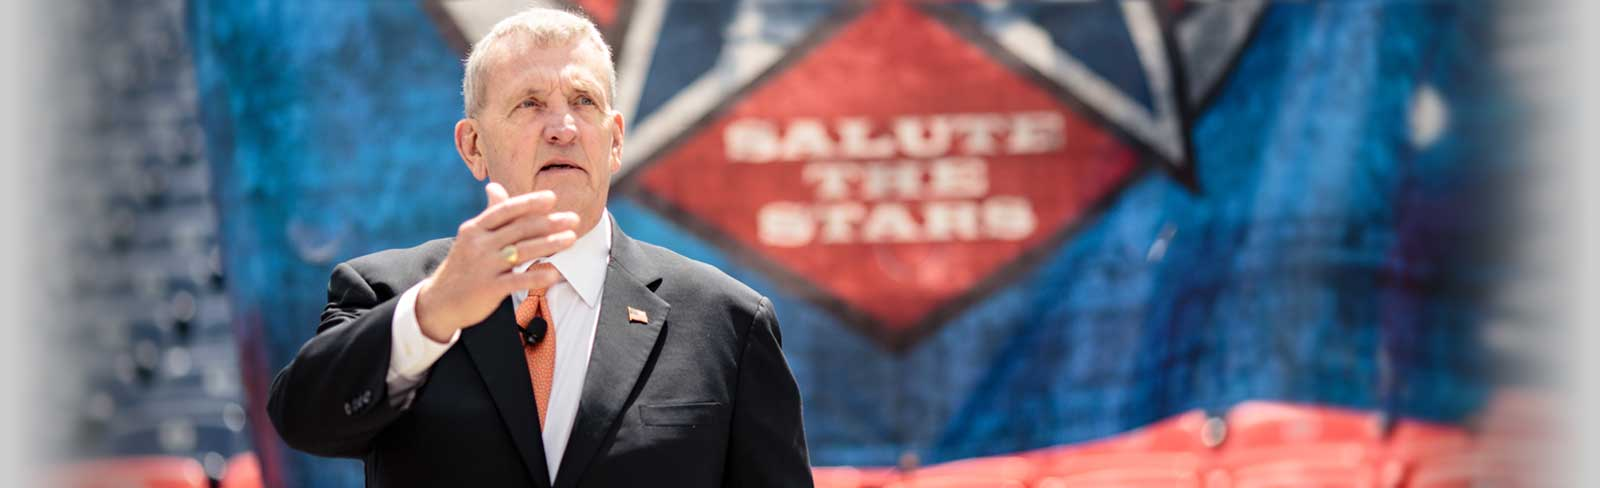 Tommy Franks Awards Speach